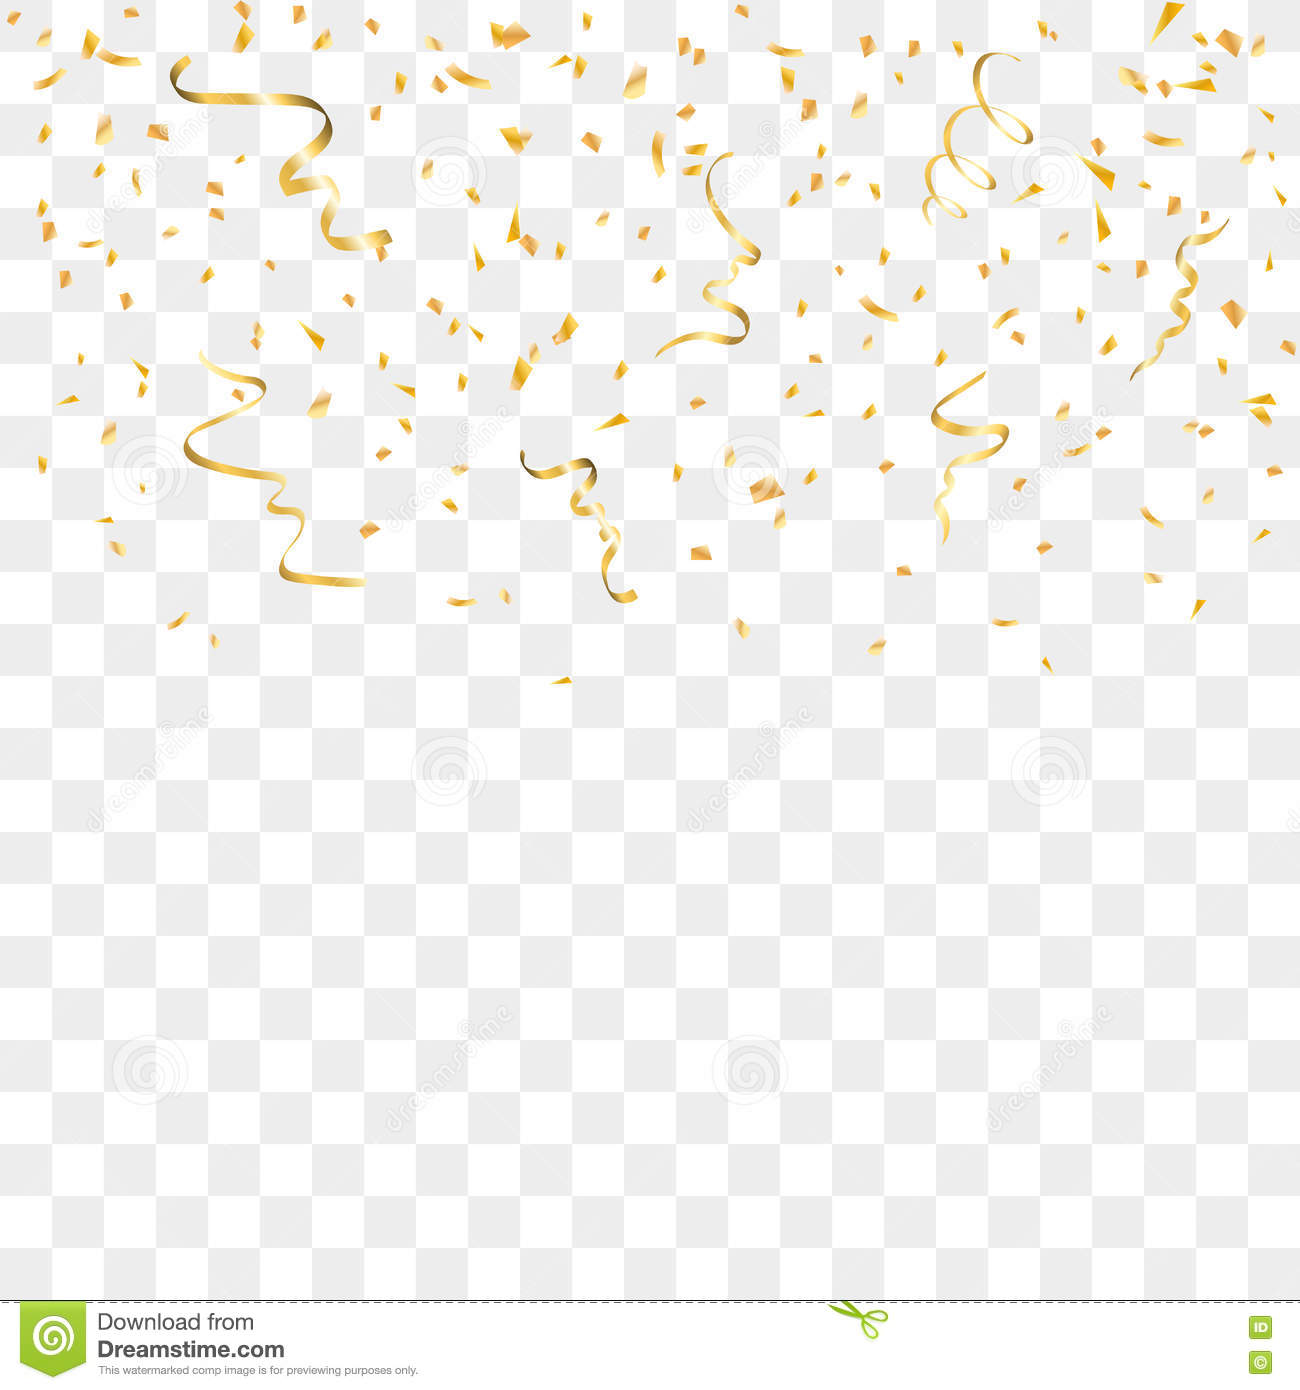 gold party vector - photo #34